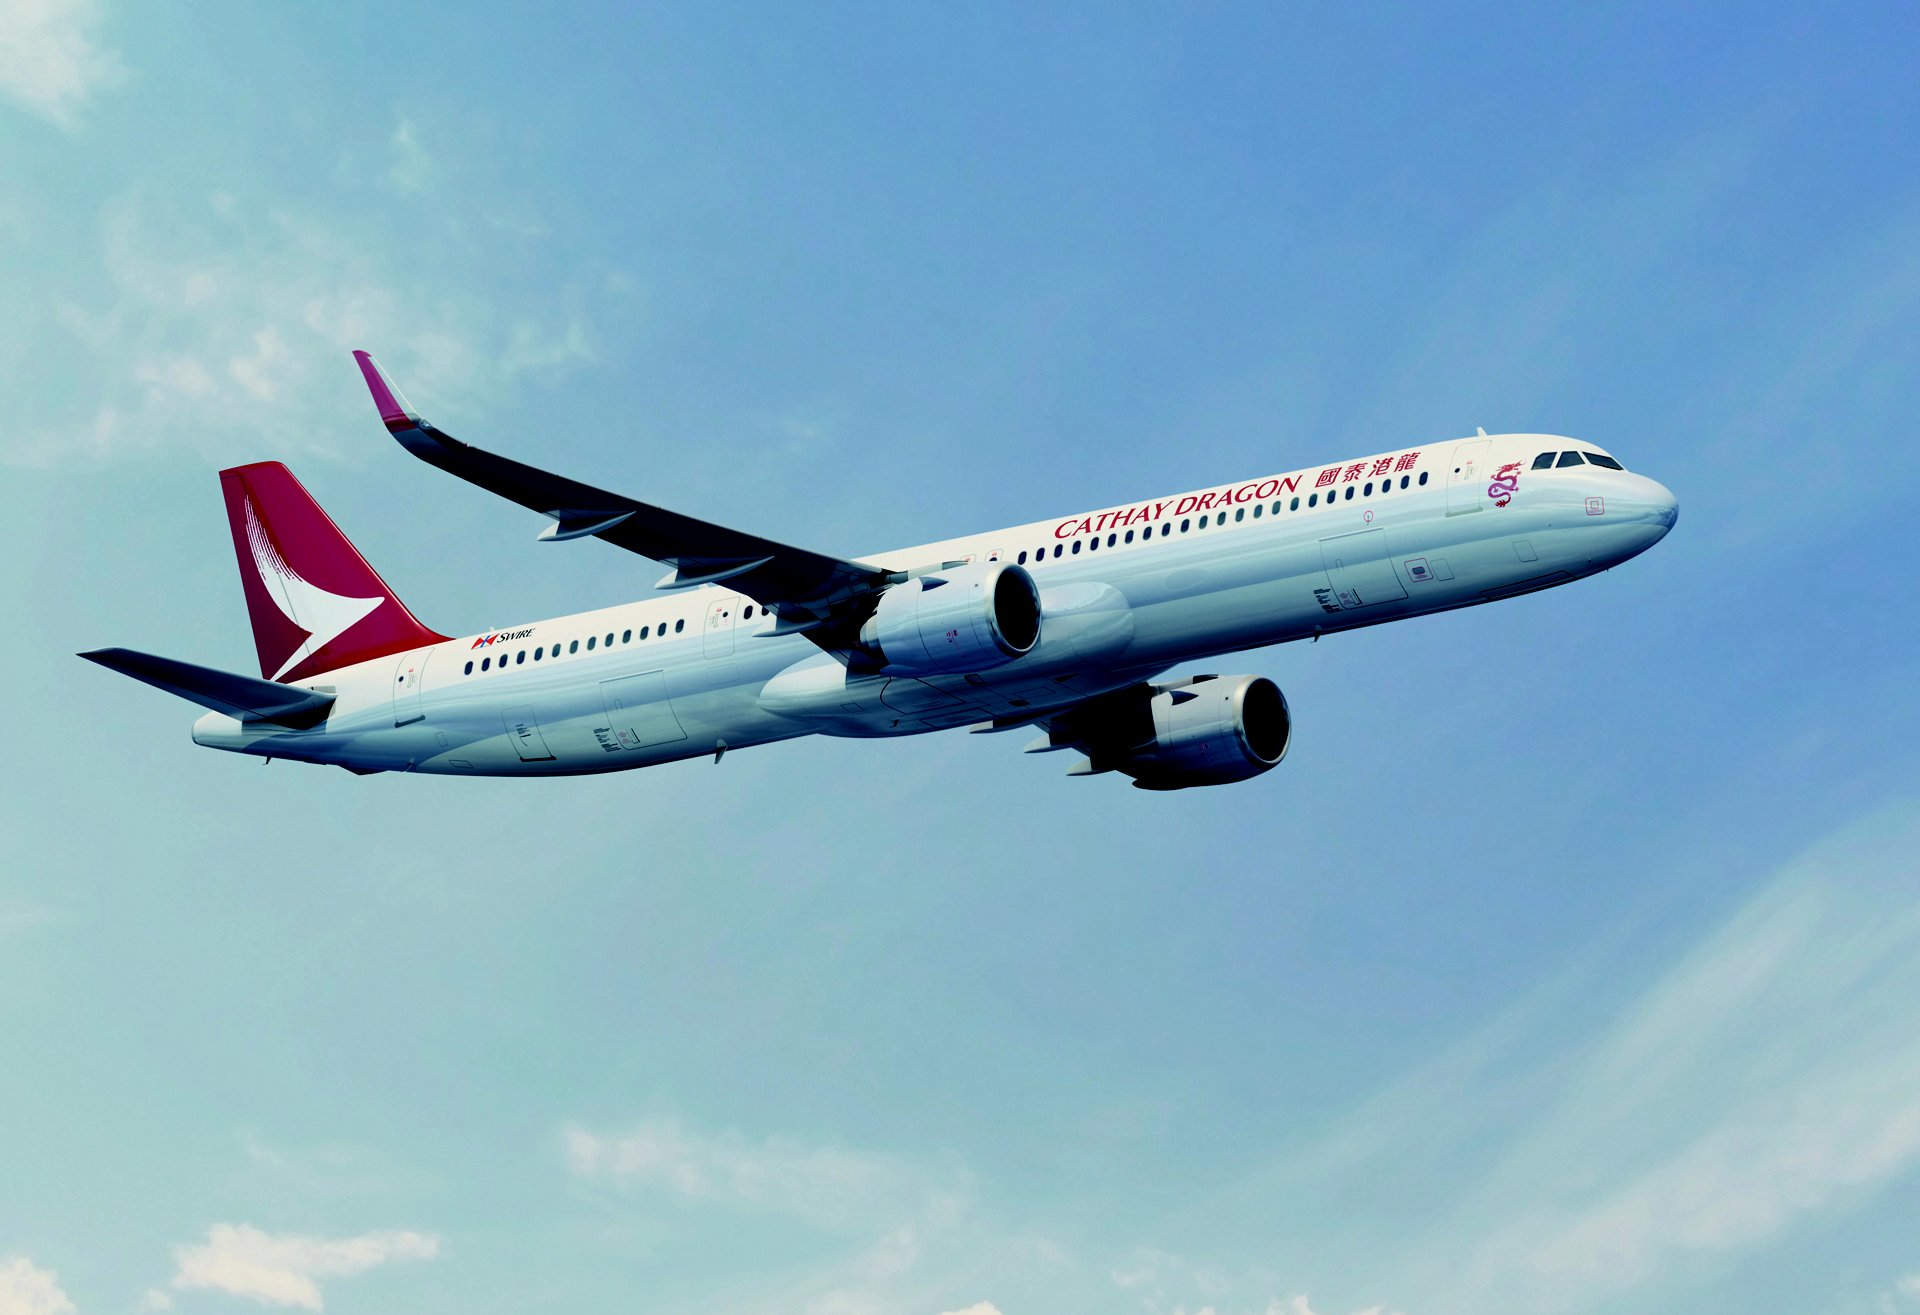 Cathay Pacific Airways has finalised an order with Airbus for 32 A321neo single-aisle aircraft.